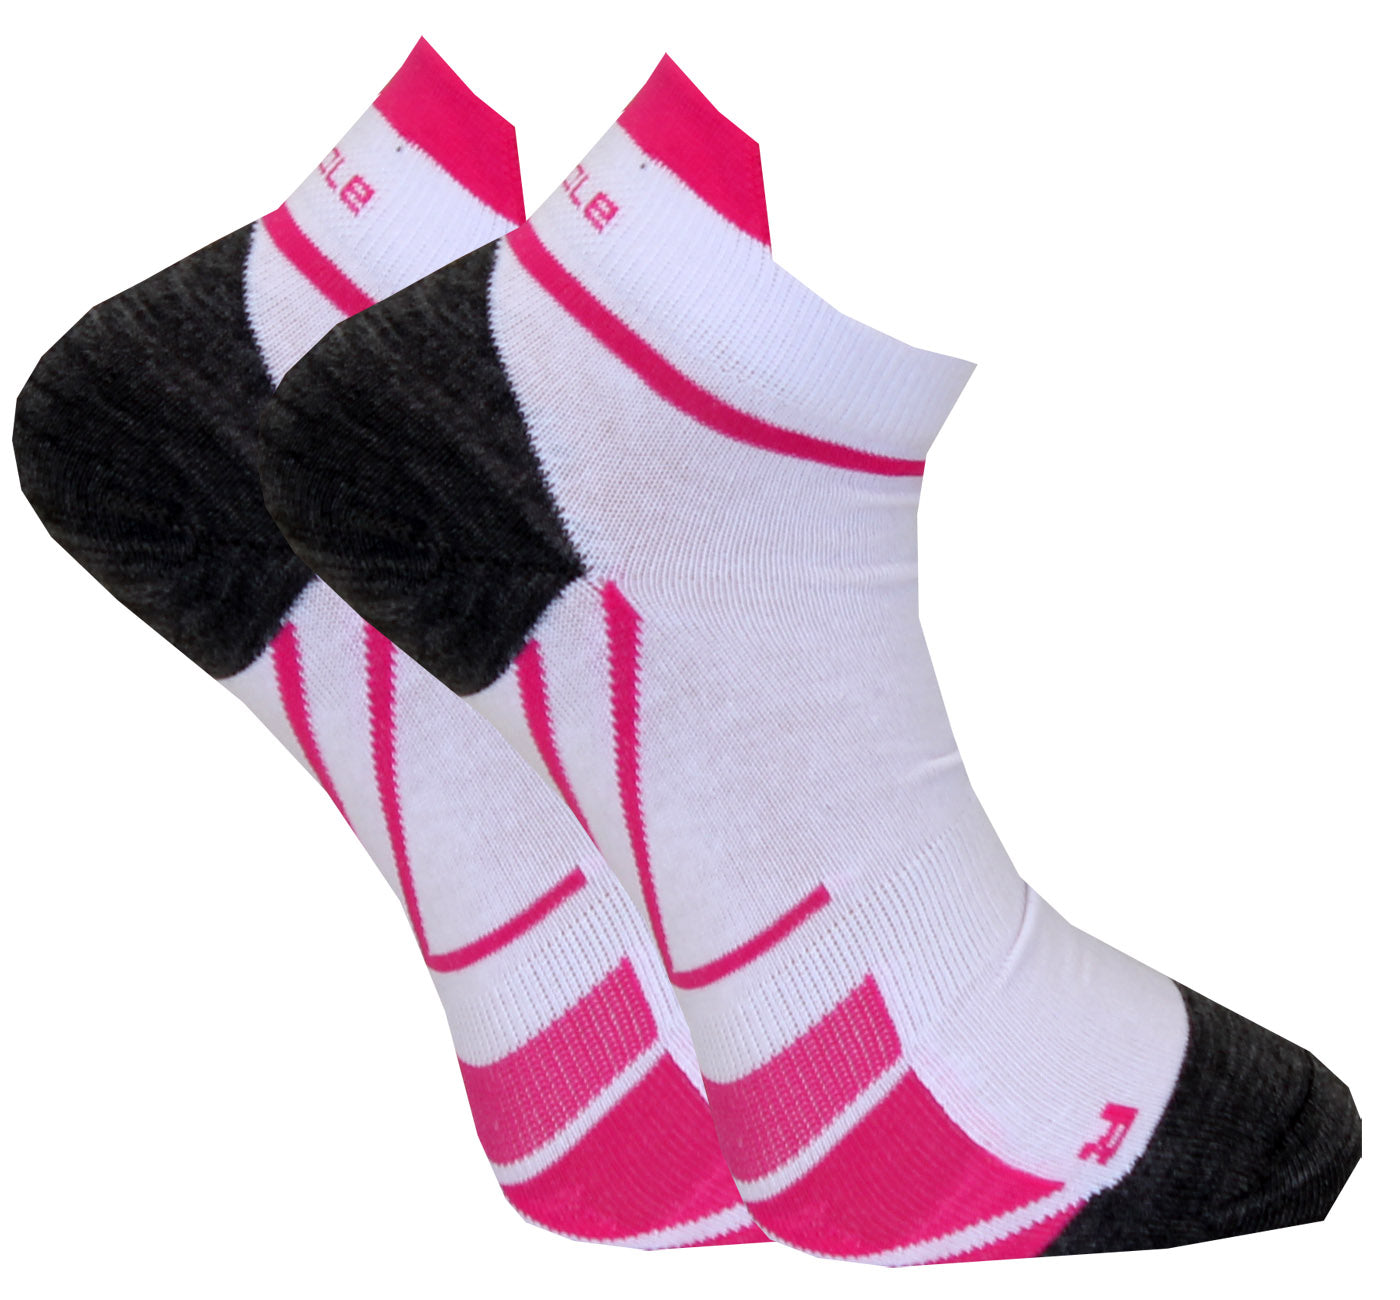 C-sole Running 2-pack HIGH White/Pink